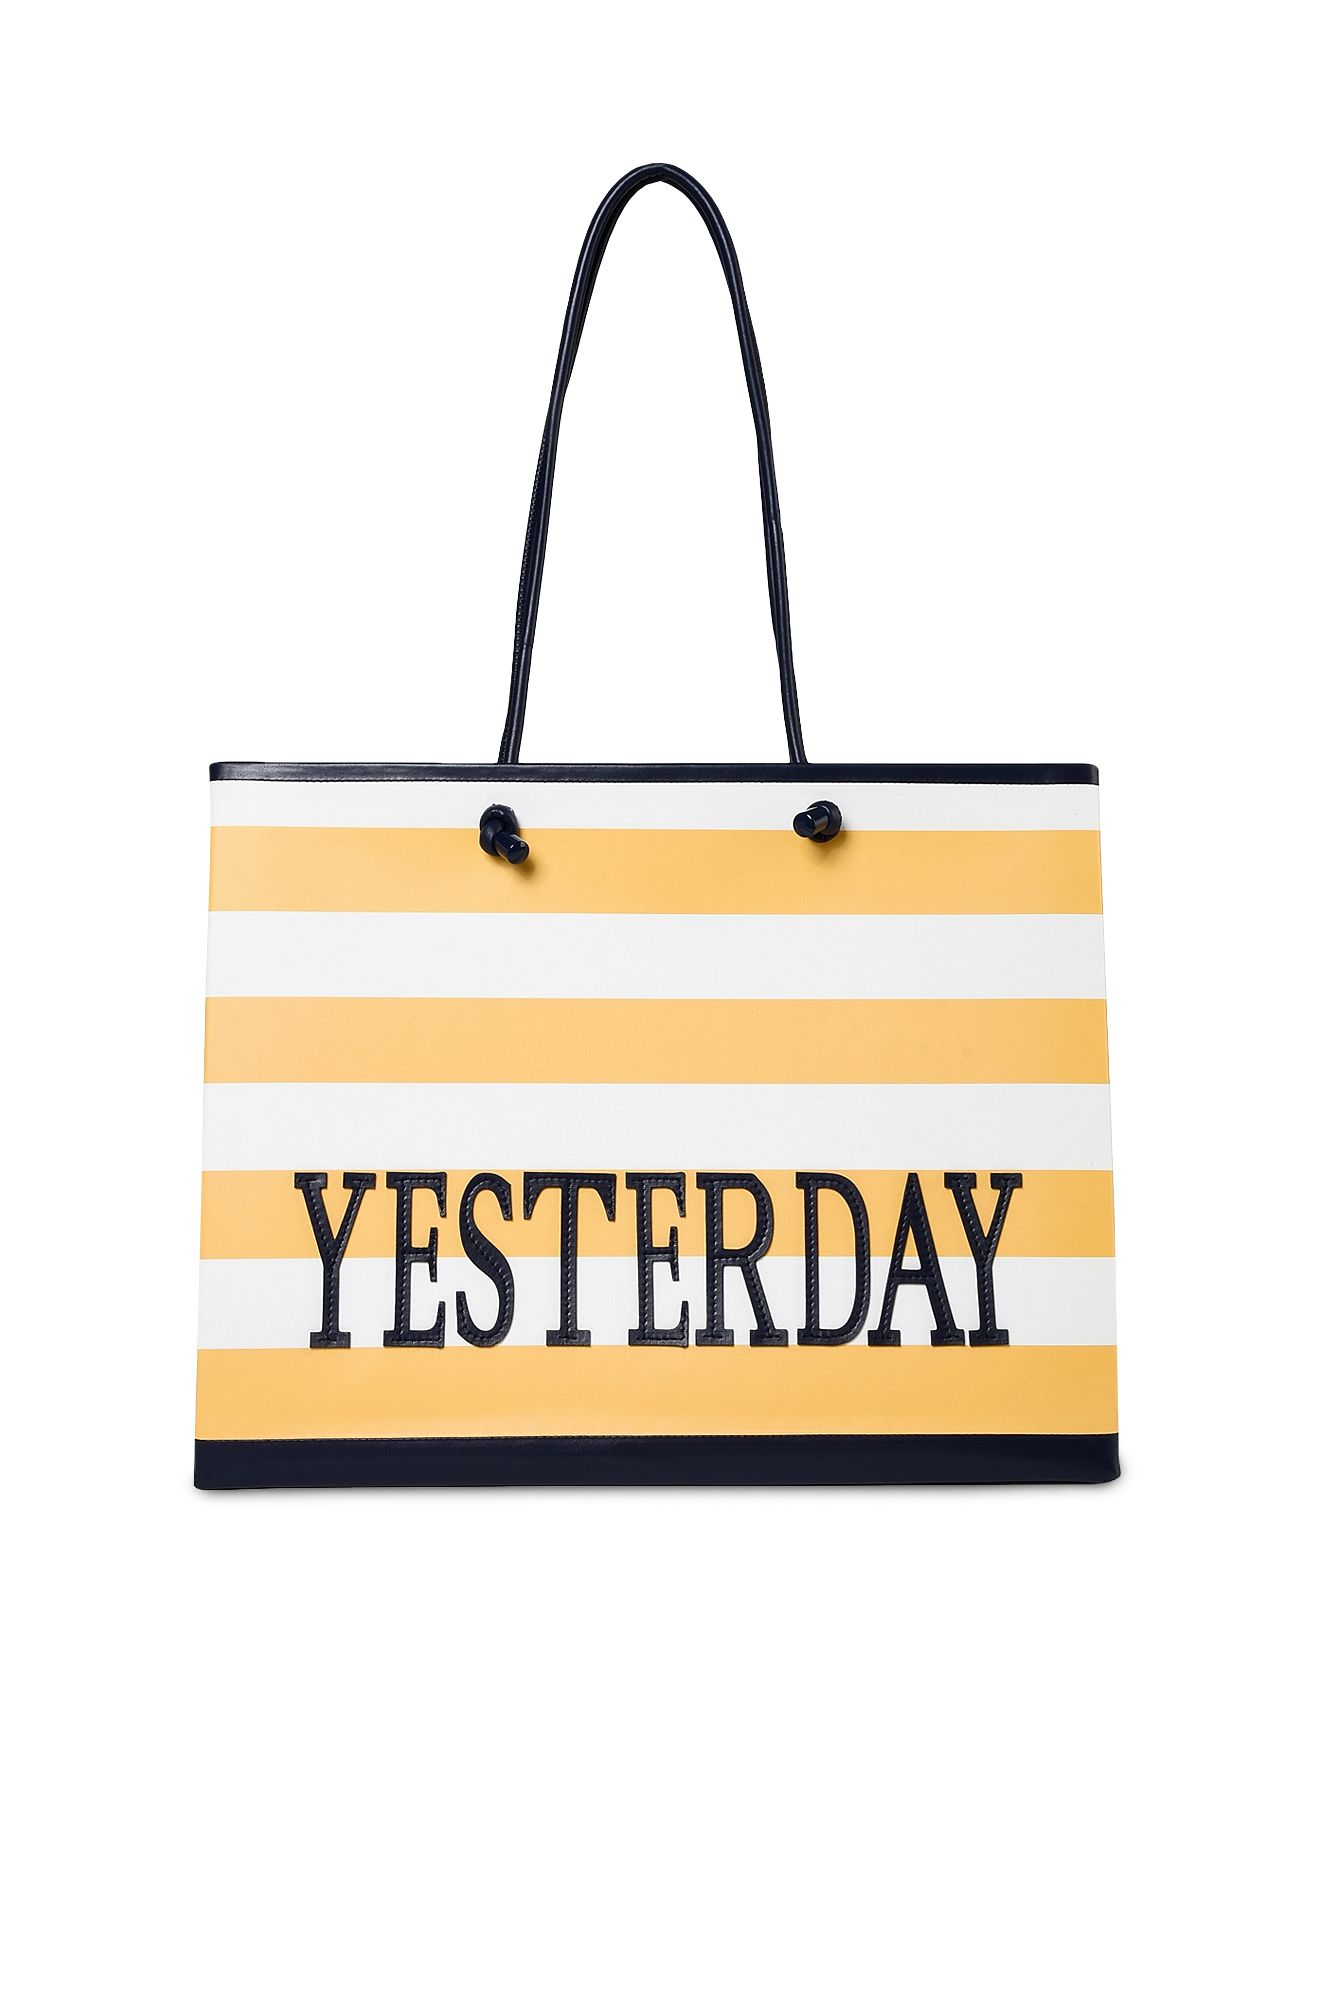 Yesterday shopping bag